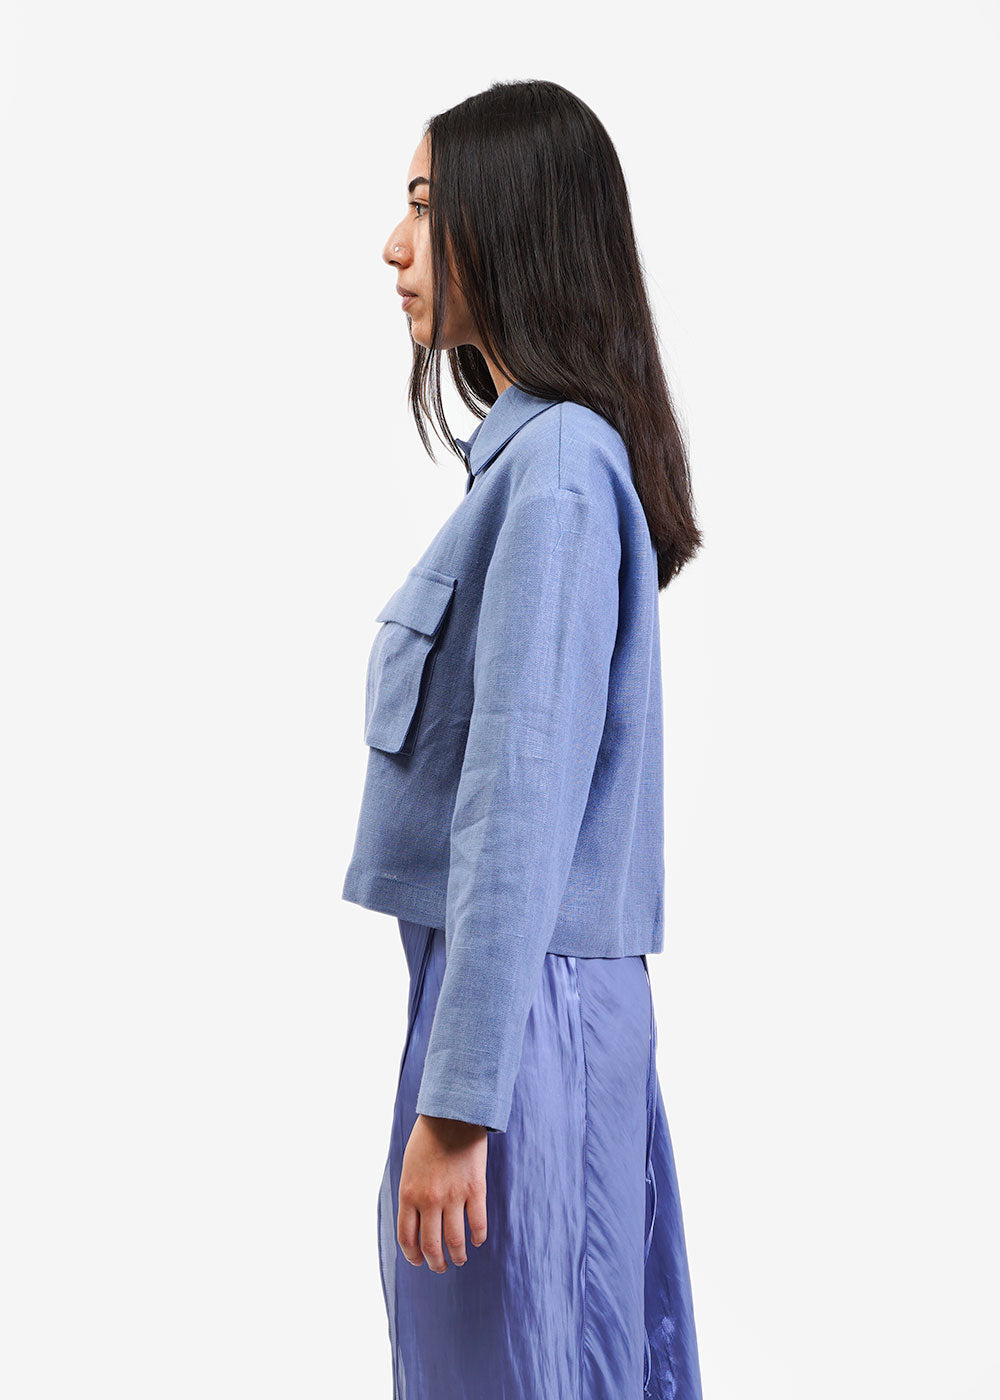 Paloma Wool Apollonia Jacket — Shop sustainable fashion and slow fashion at New Classics Studios